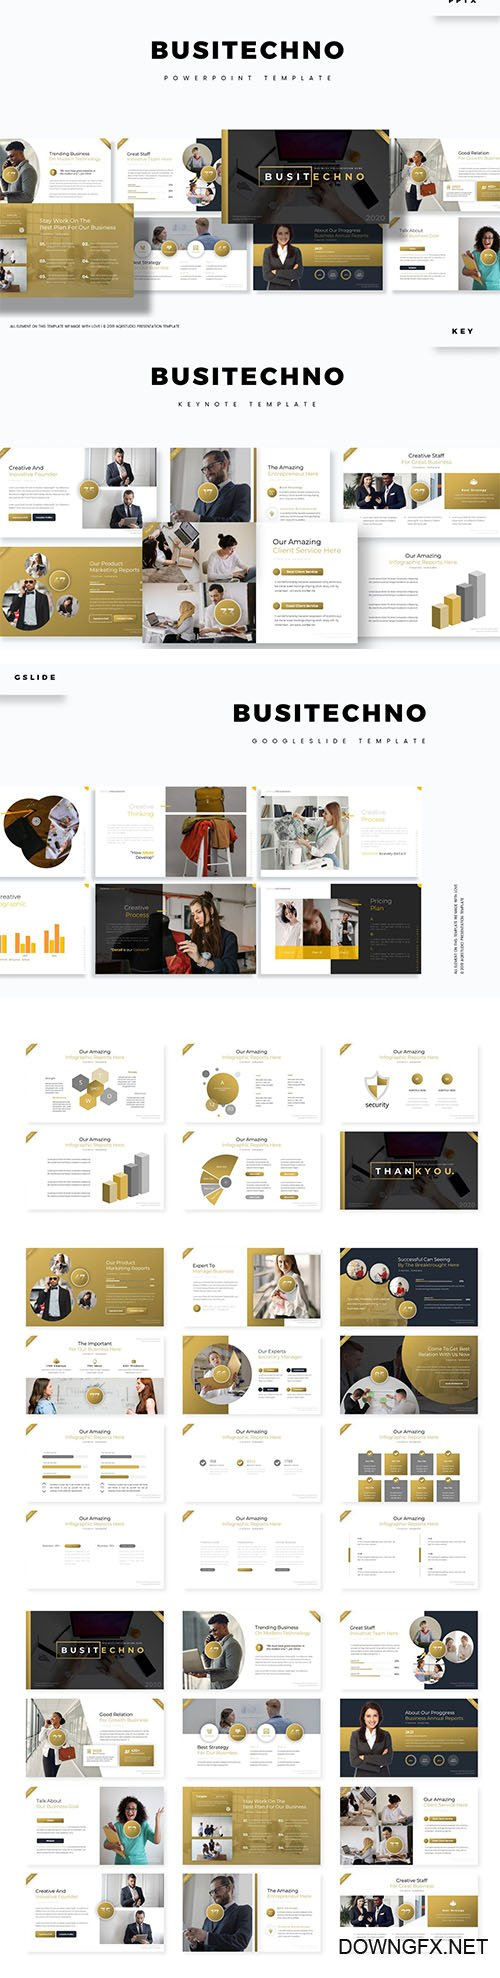 Busitechno Powerpoint, Keynote and Google Slide Template